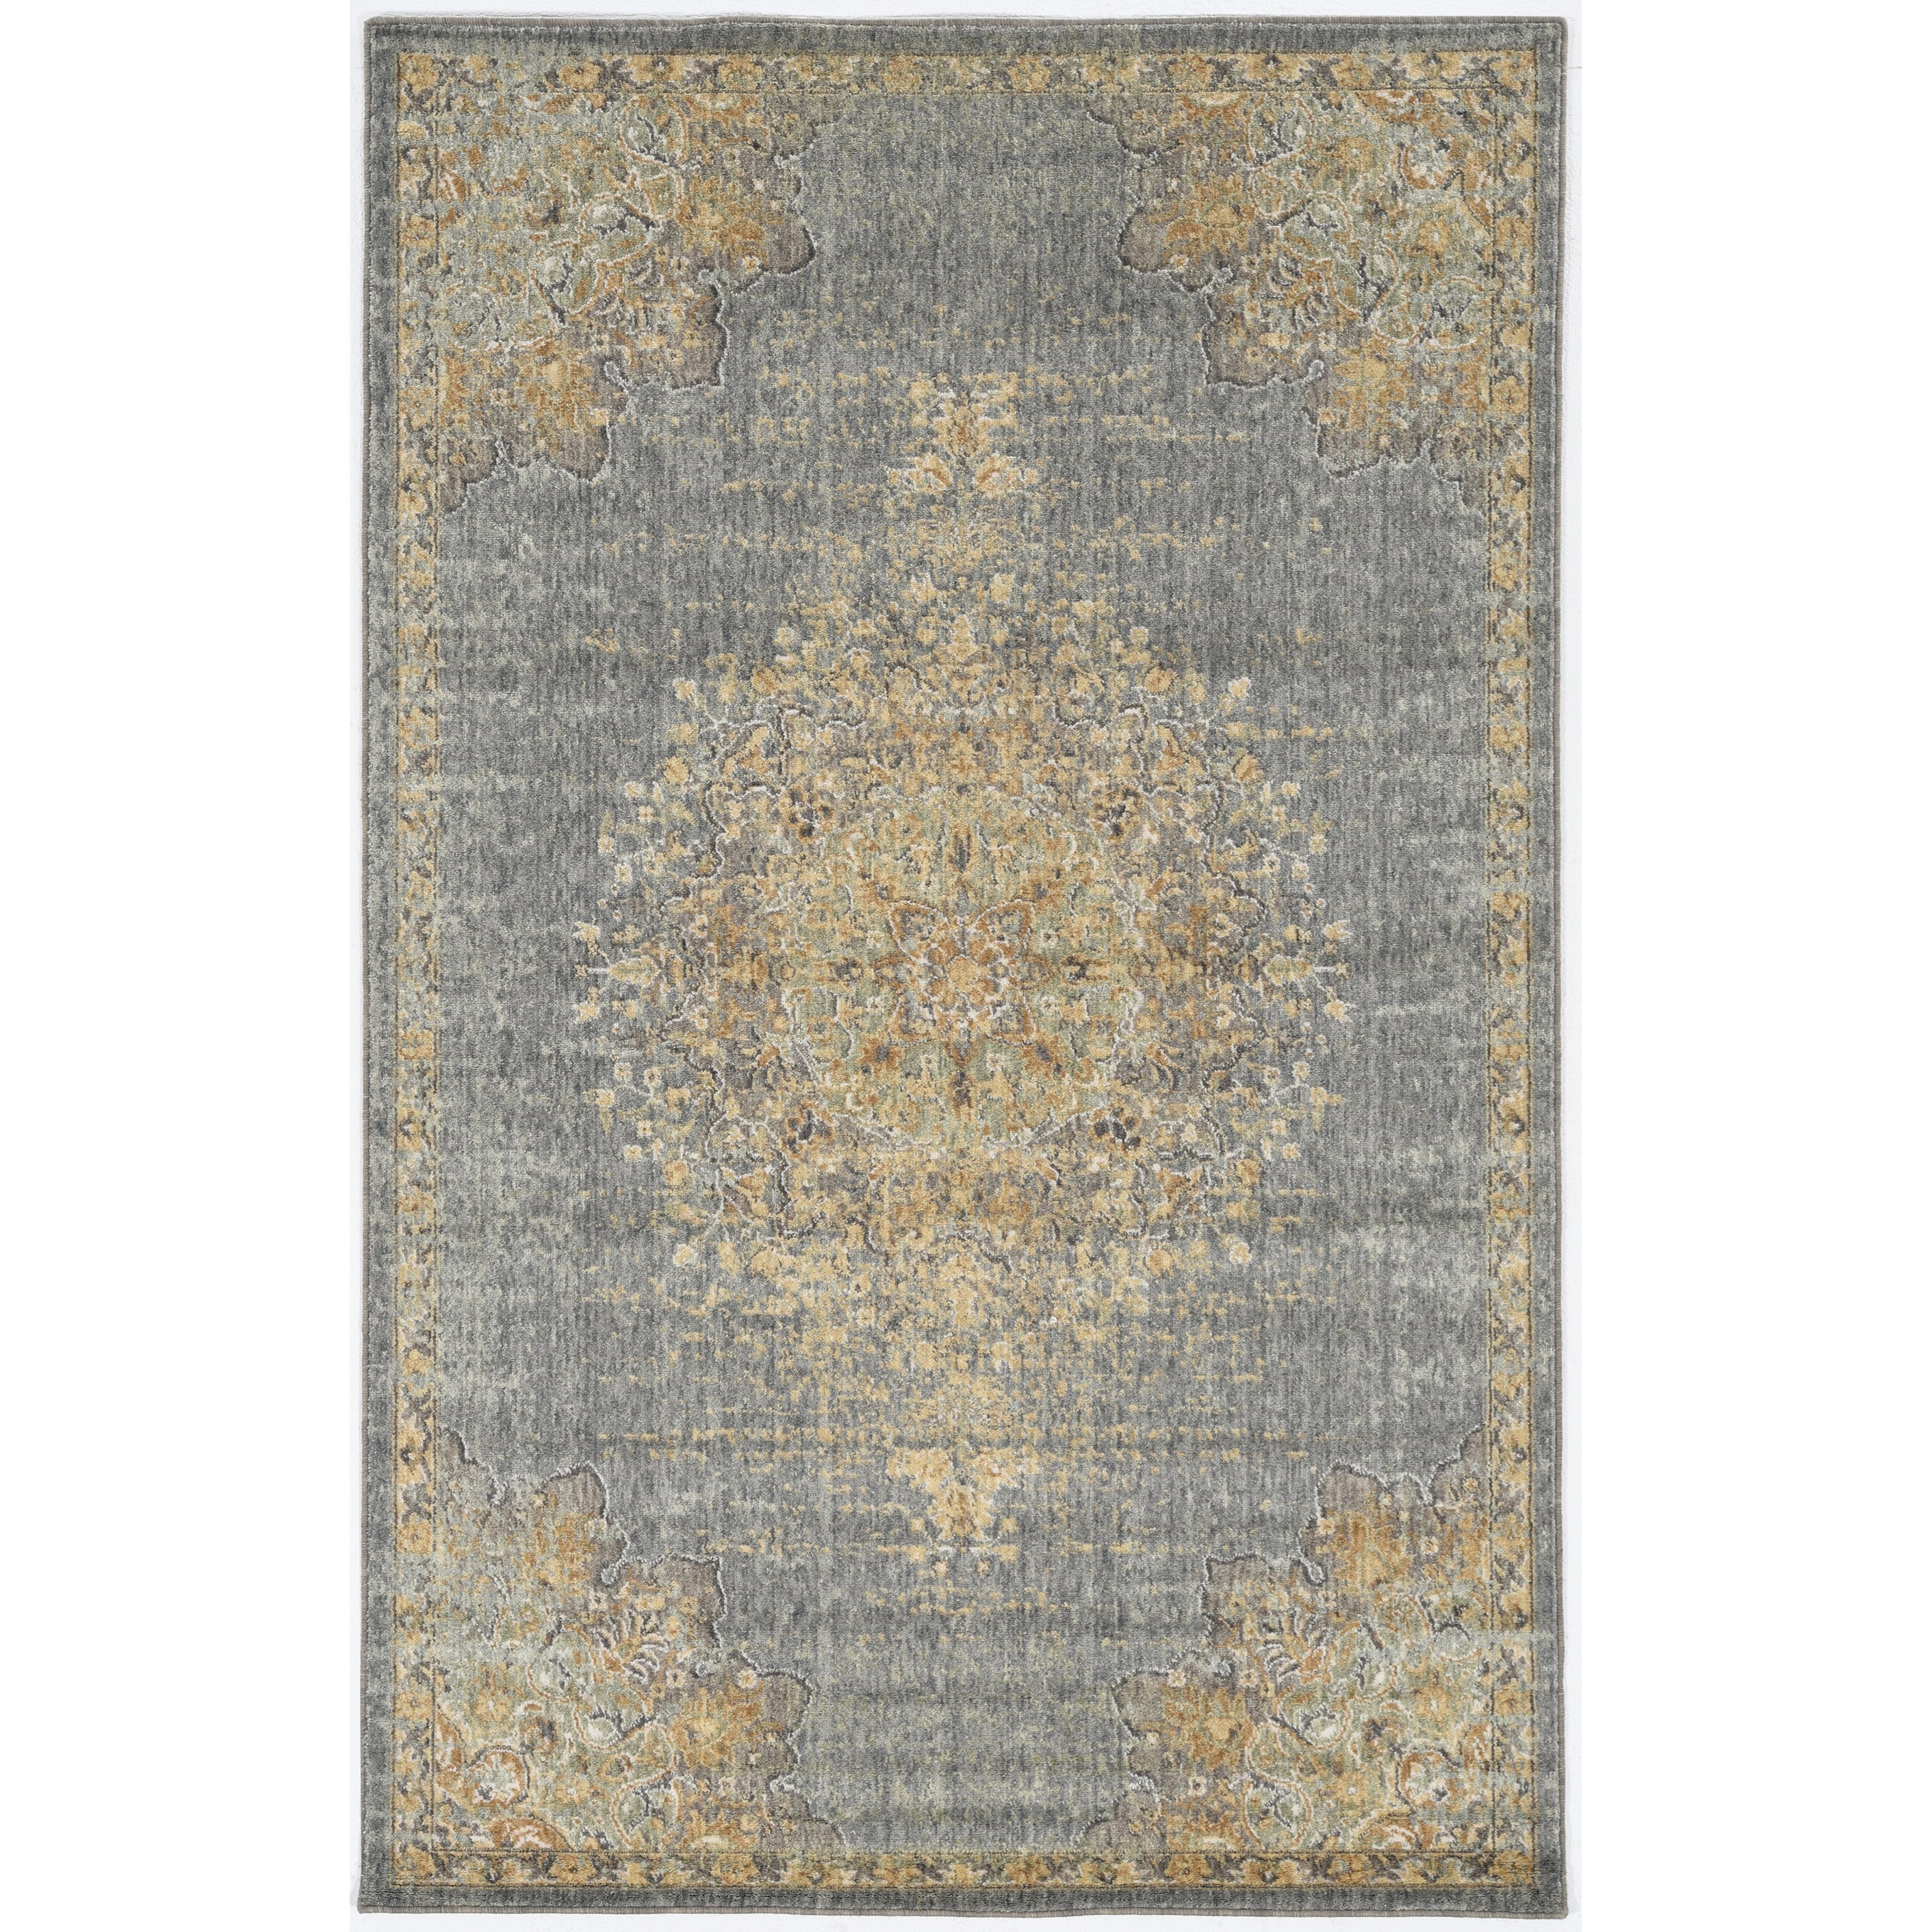 "Ria 2'3"" x 7'6"" Runner Slate Grey Elegance Rug by Kas at Zak's Home"